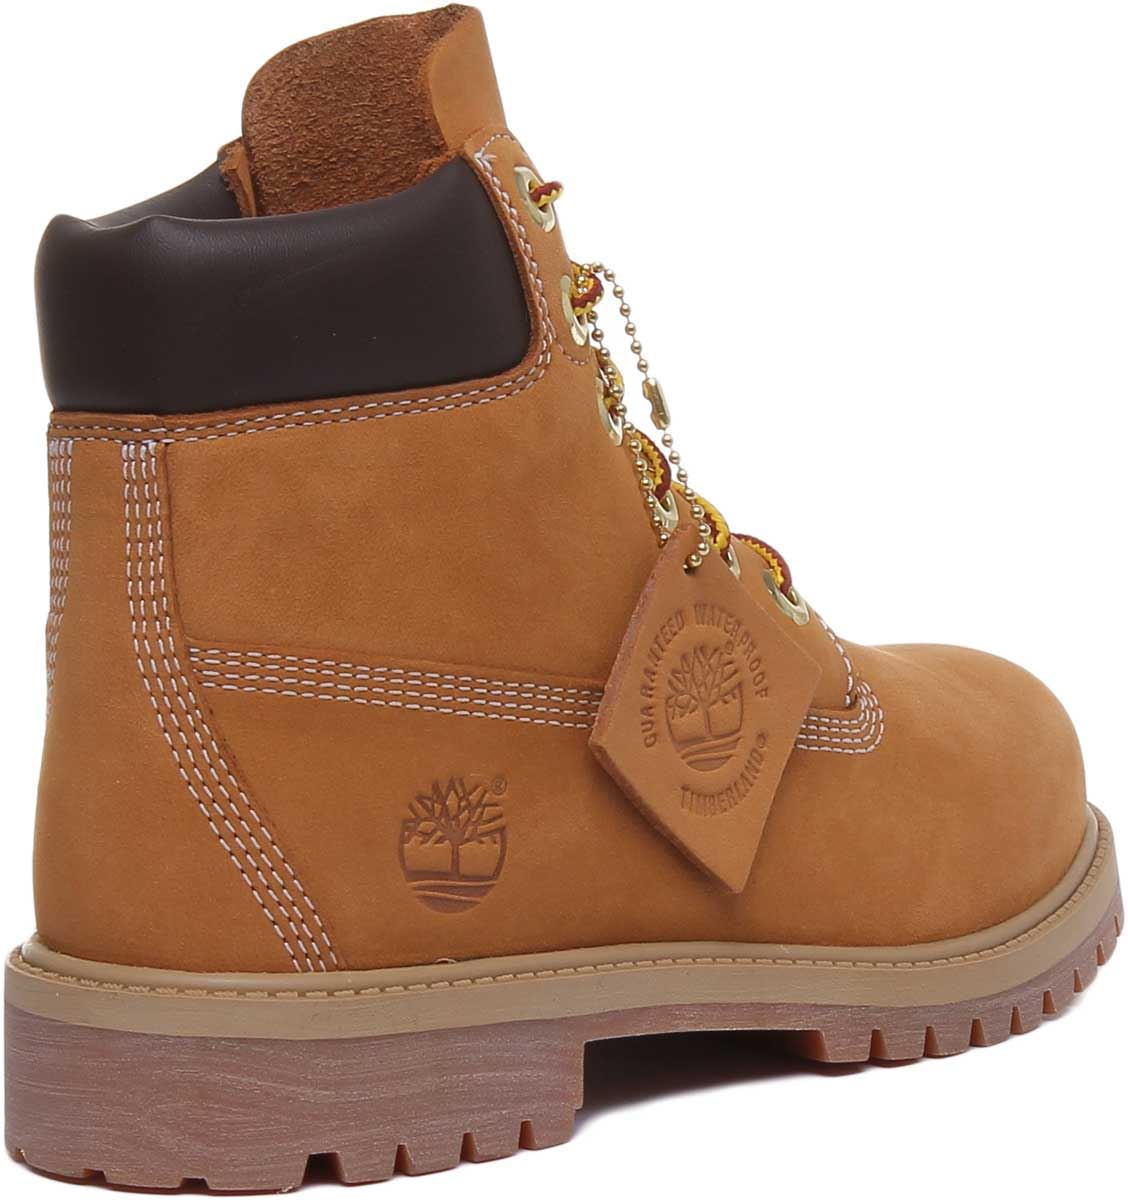 thumbnail 9 - Timberland-12909-Juniors-6-Inch-Premium-Lace-Up-In-Wheat-Size-UK-3-7